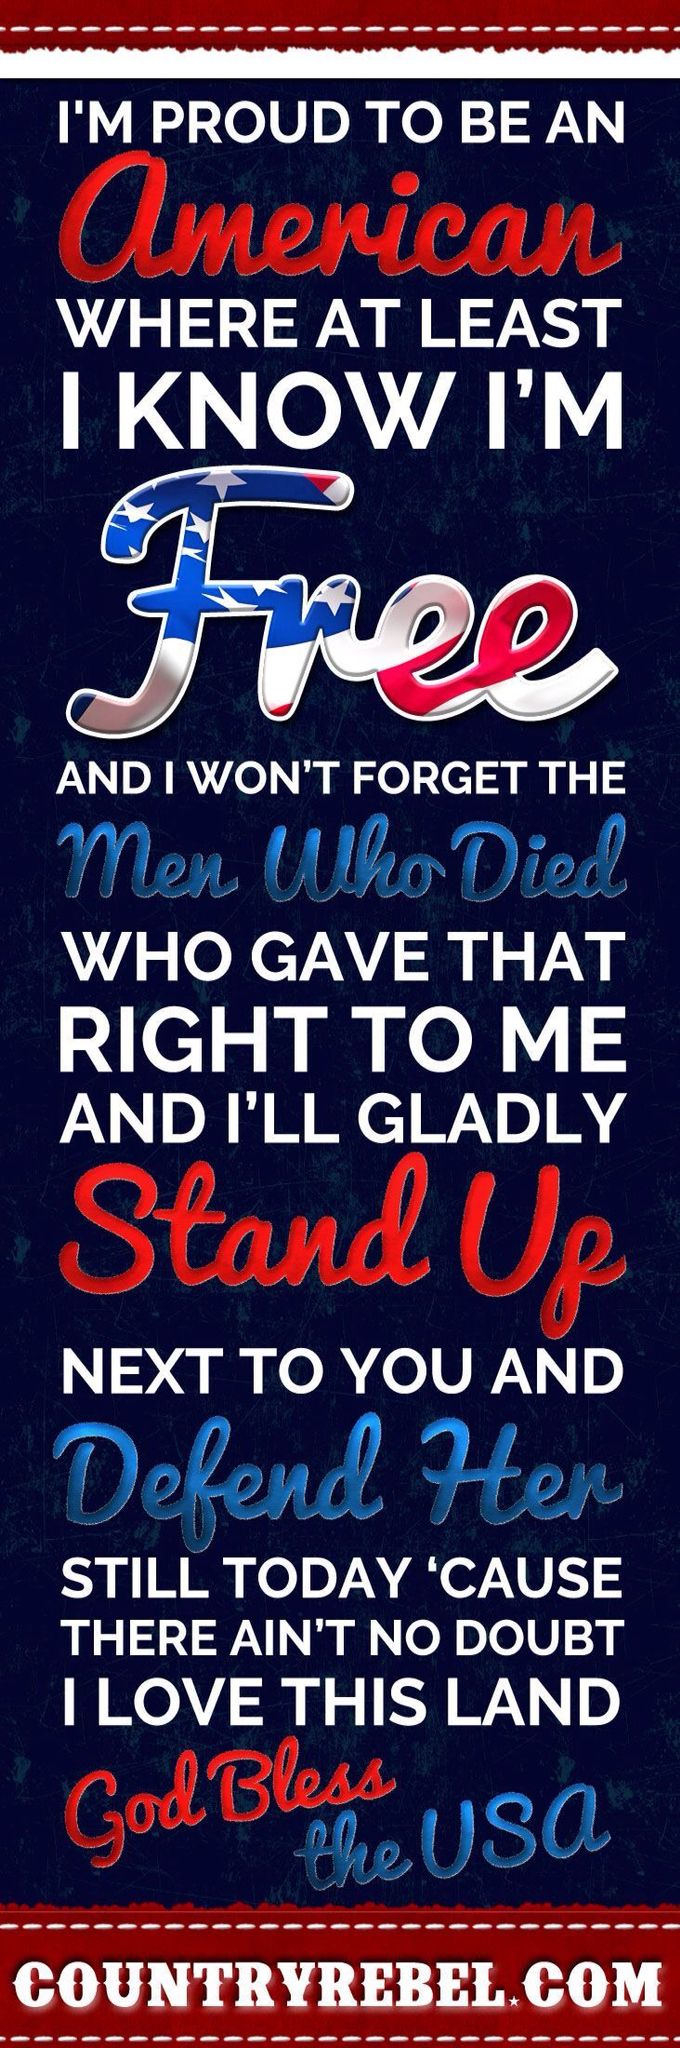 - from God Bless the USA by Lee Greenwood